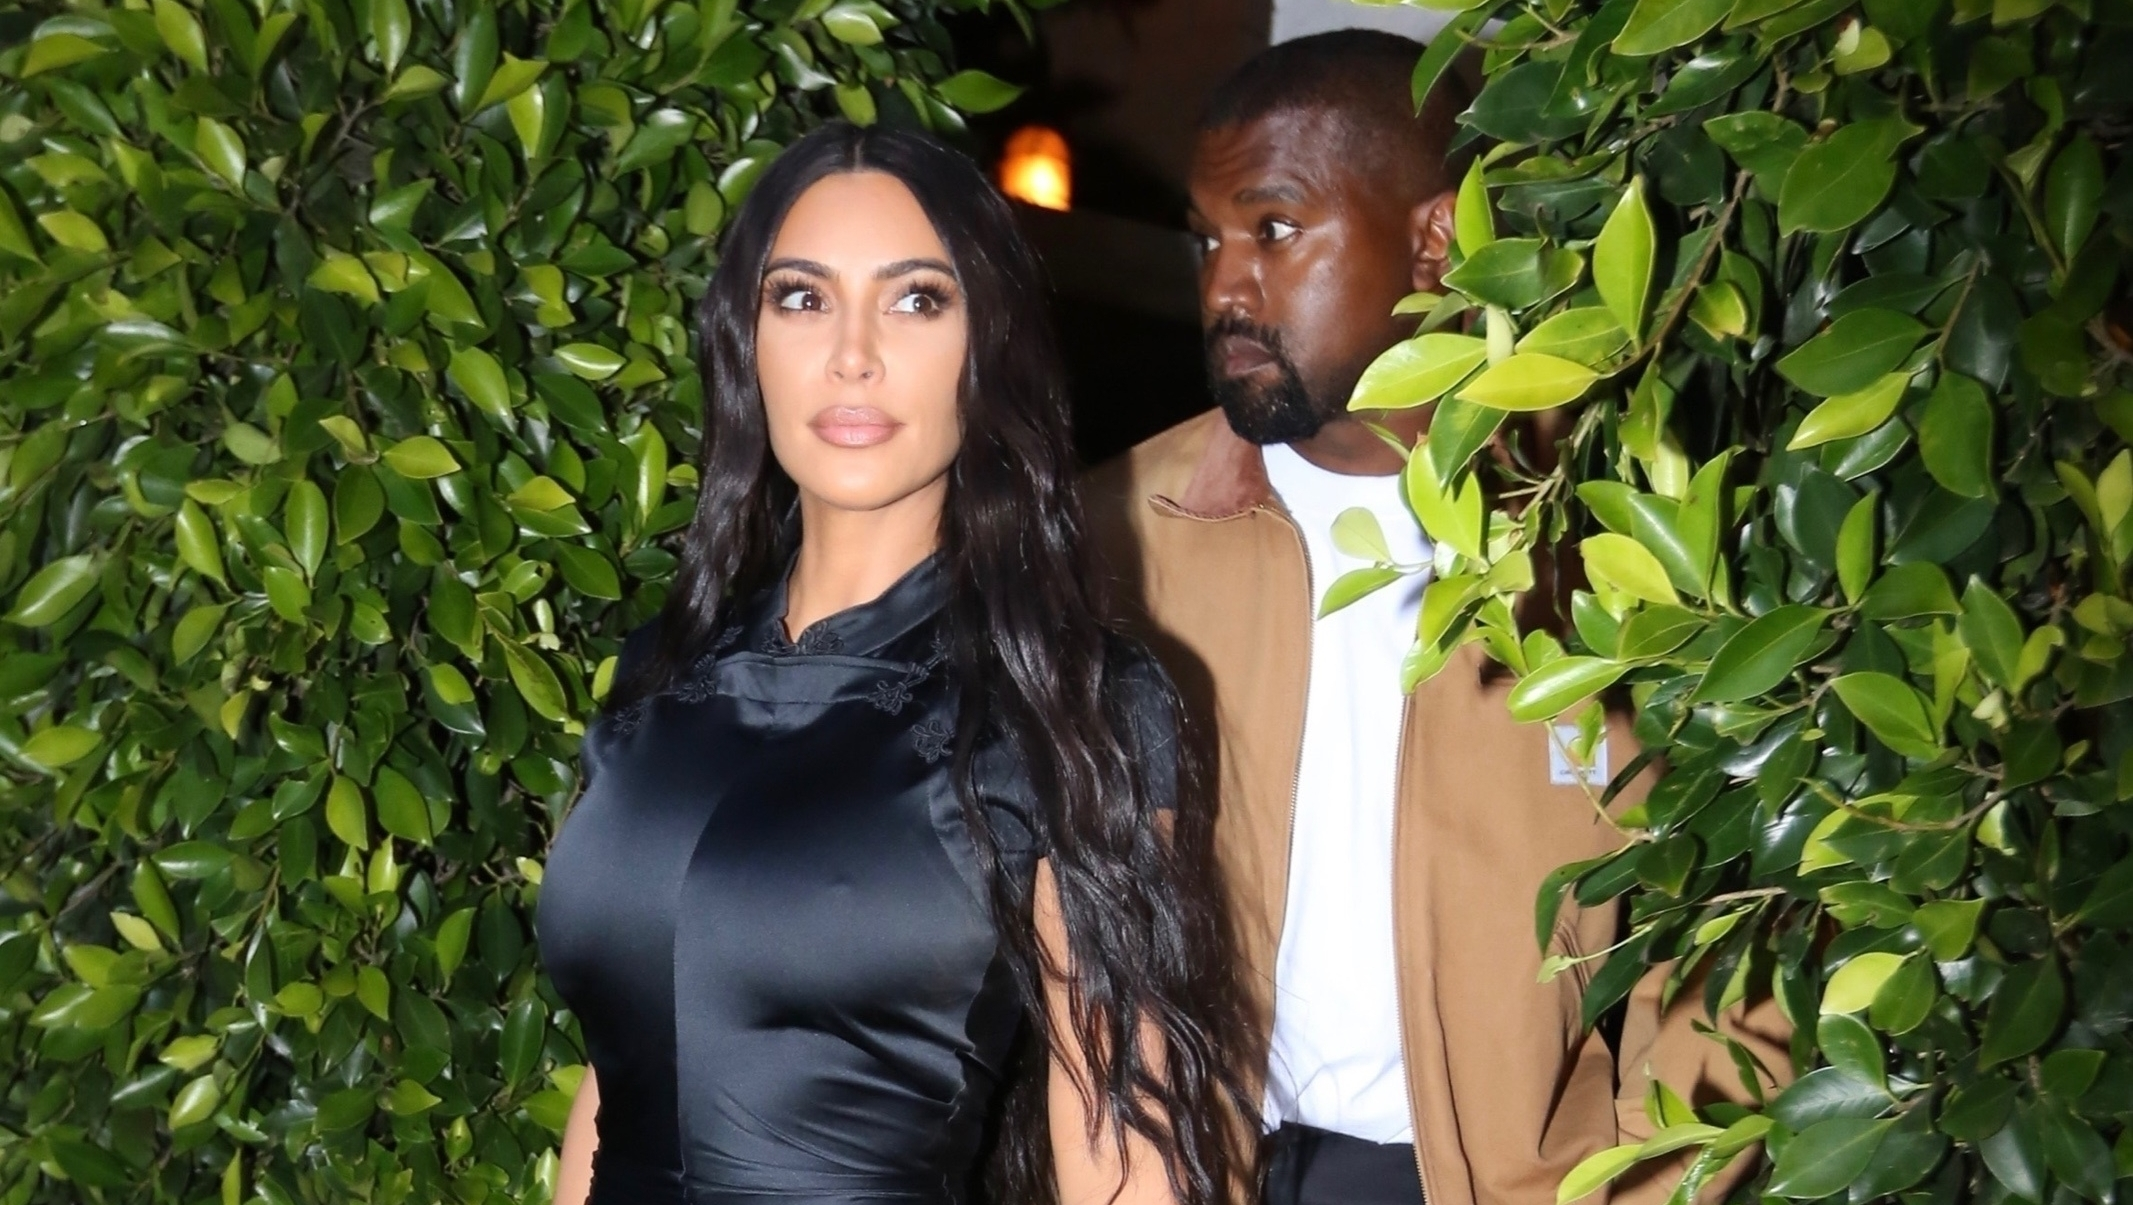 Kim Kardashian and Kanye West go out to dinner at Giorgio Baldi